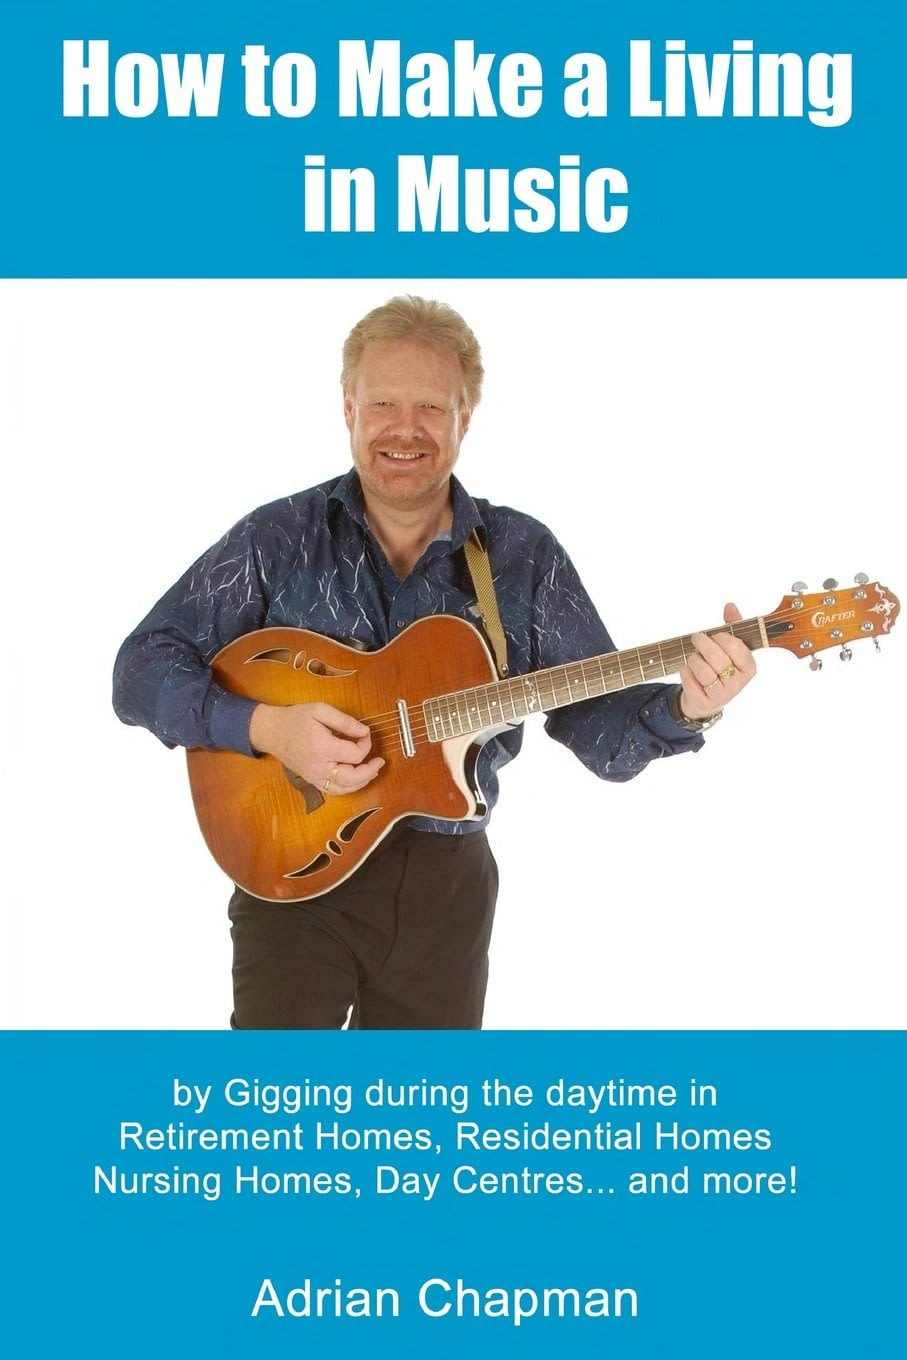 Make a Living in Music by Gigging in Retirement Homes Etc